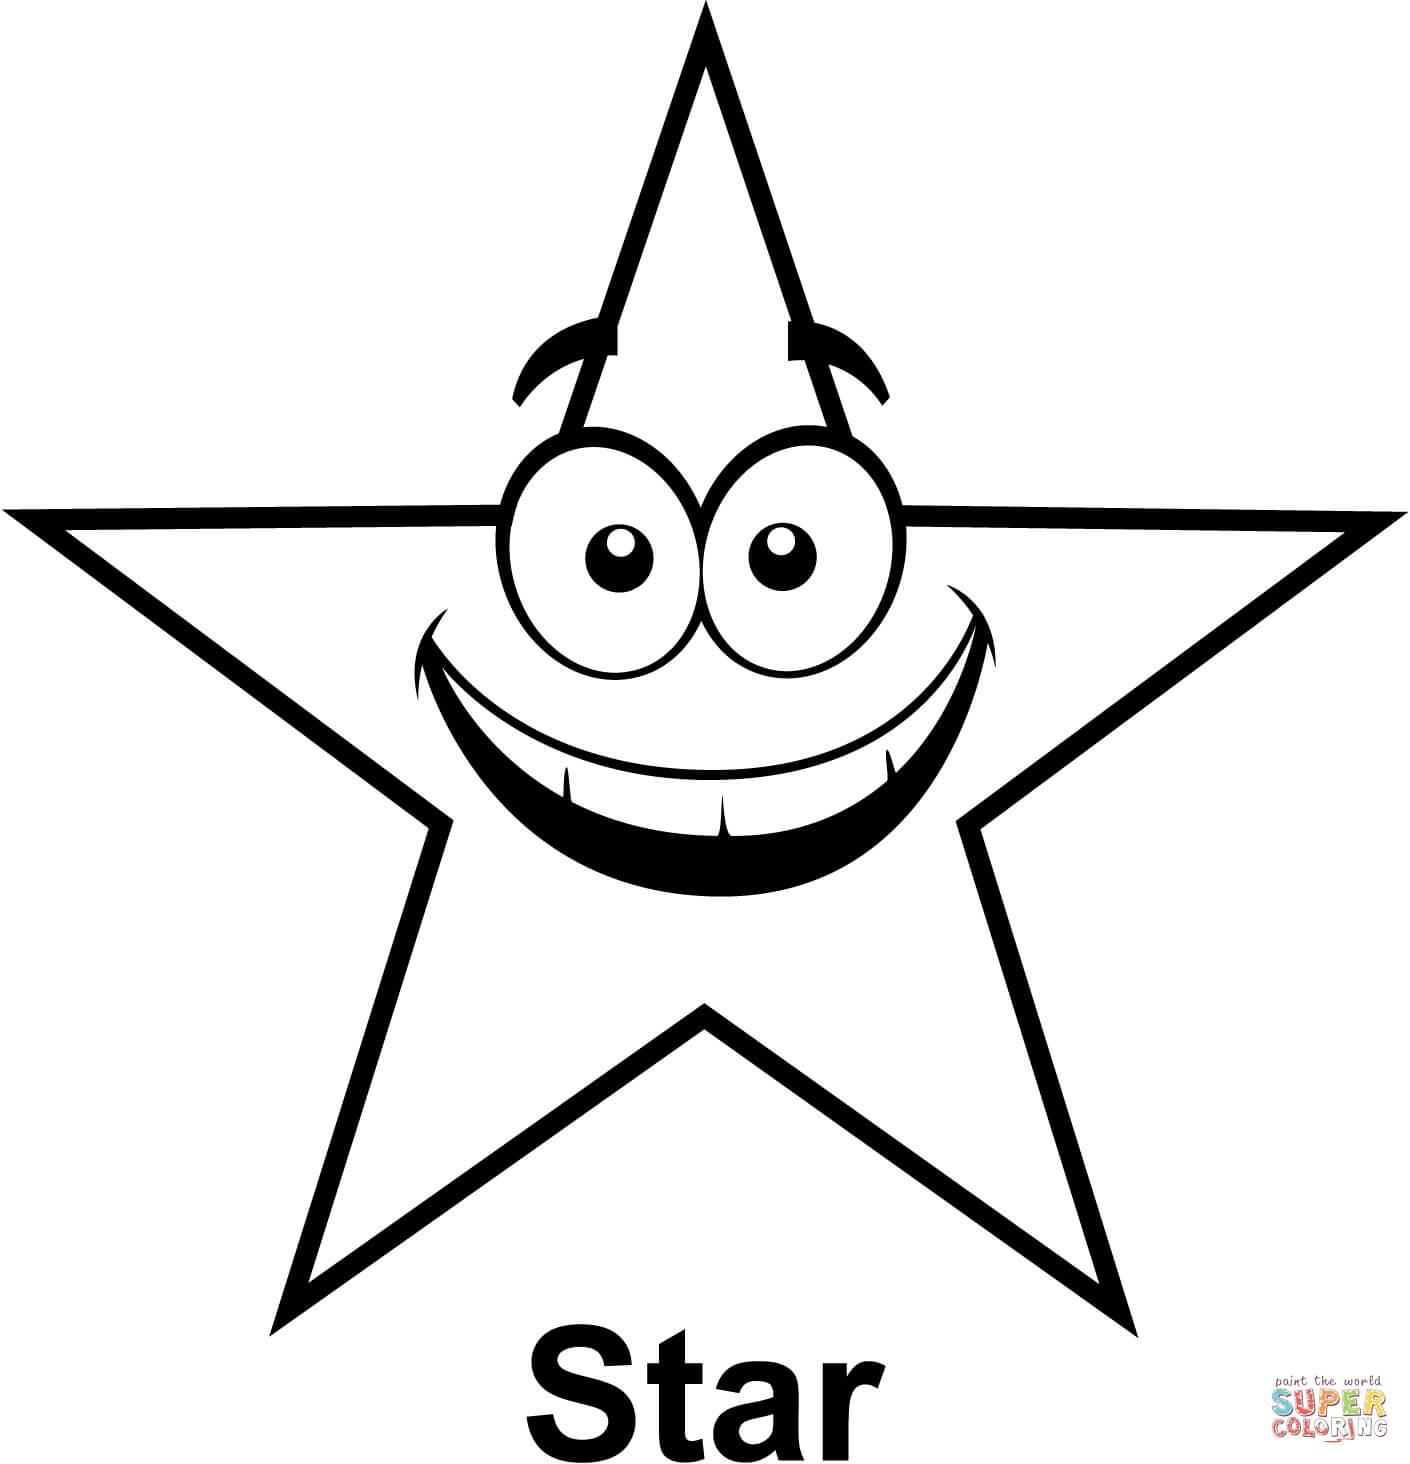 coloring star images stars coloring pages best coloring pages for kids coloring star images